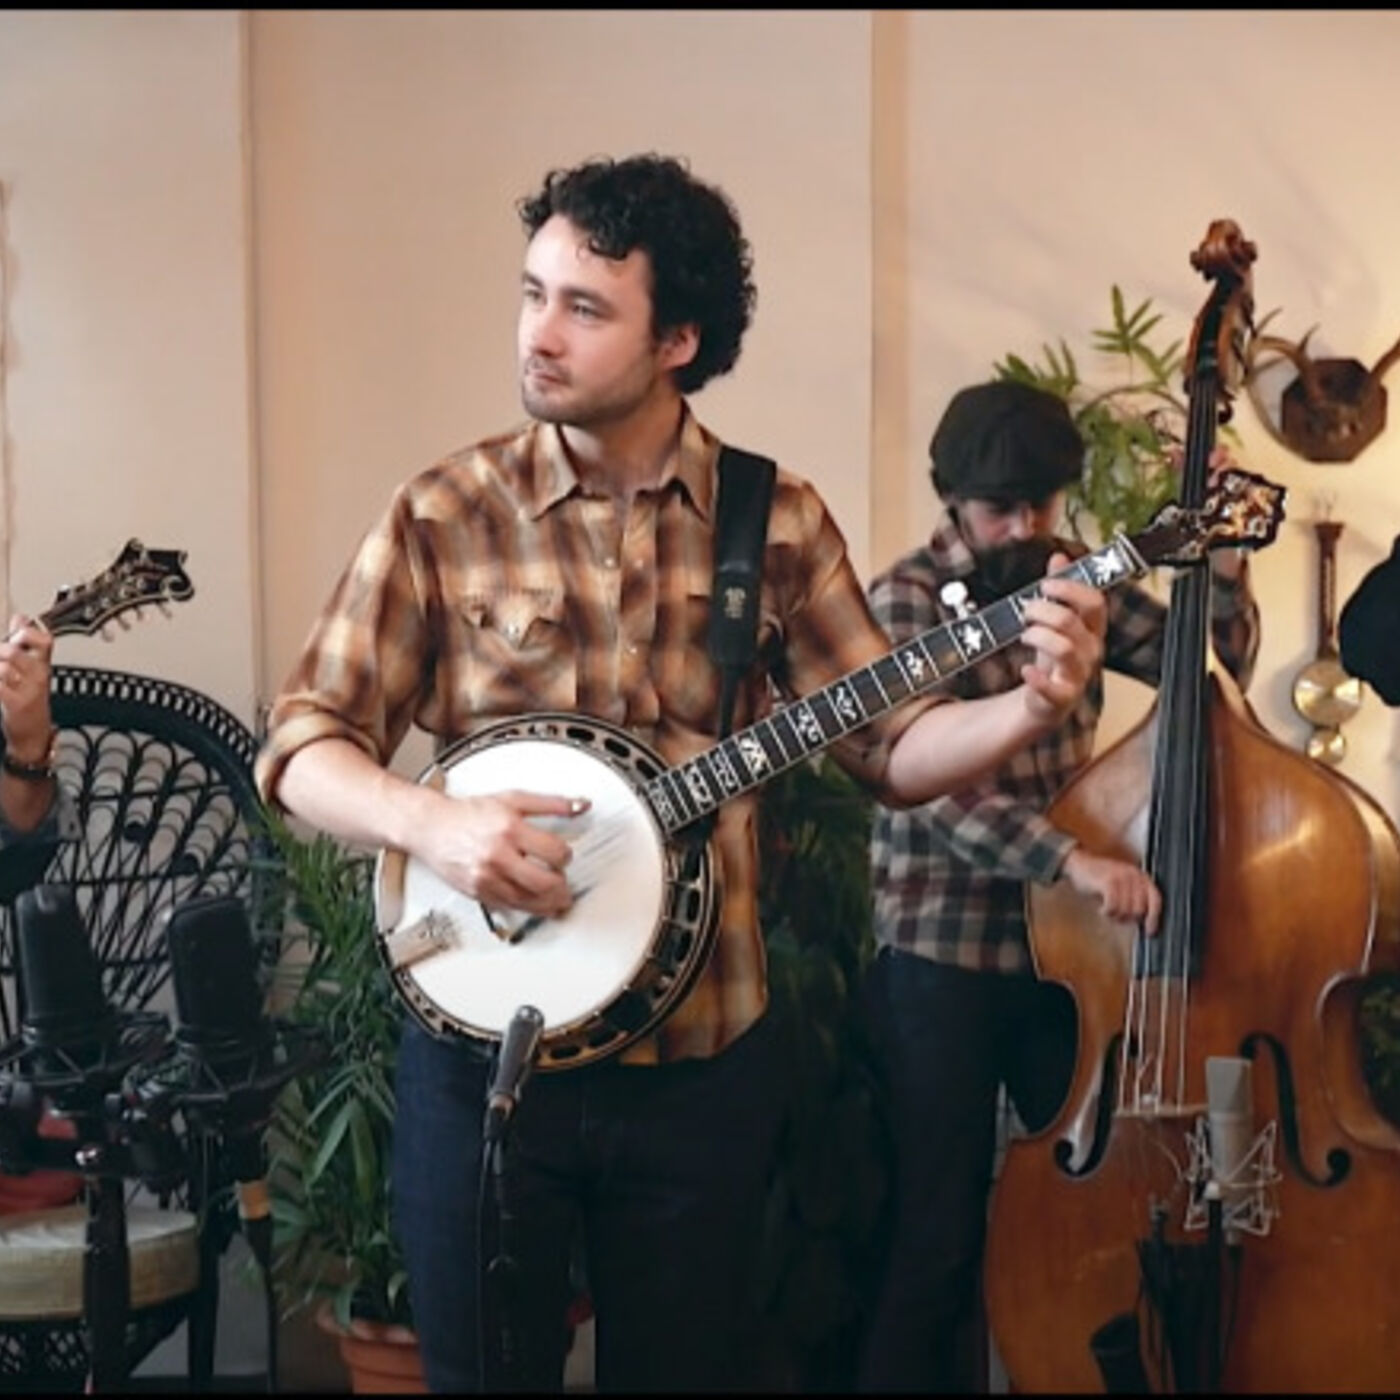 Episode 108 Part 2 Interview with Canadian bluegrass band The Slocan Ramblers